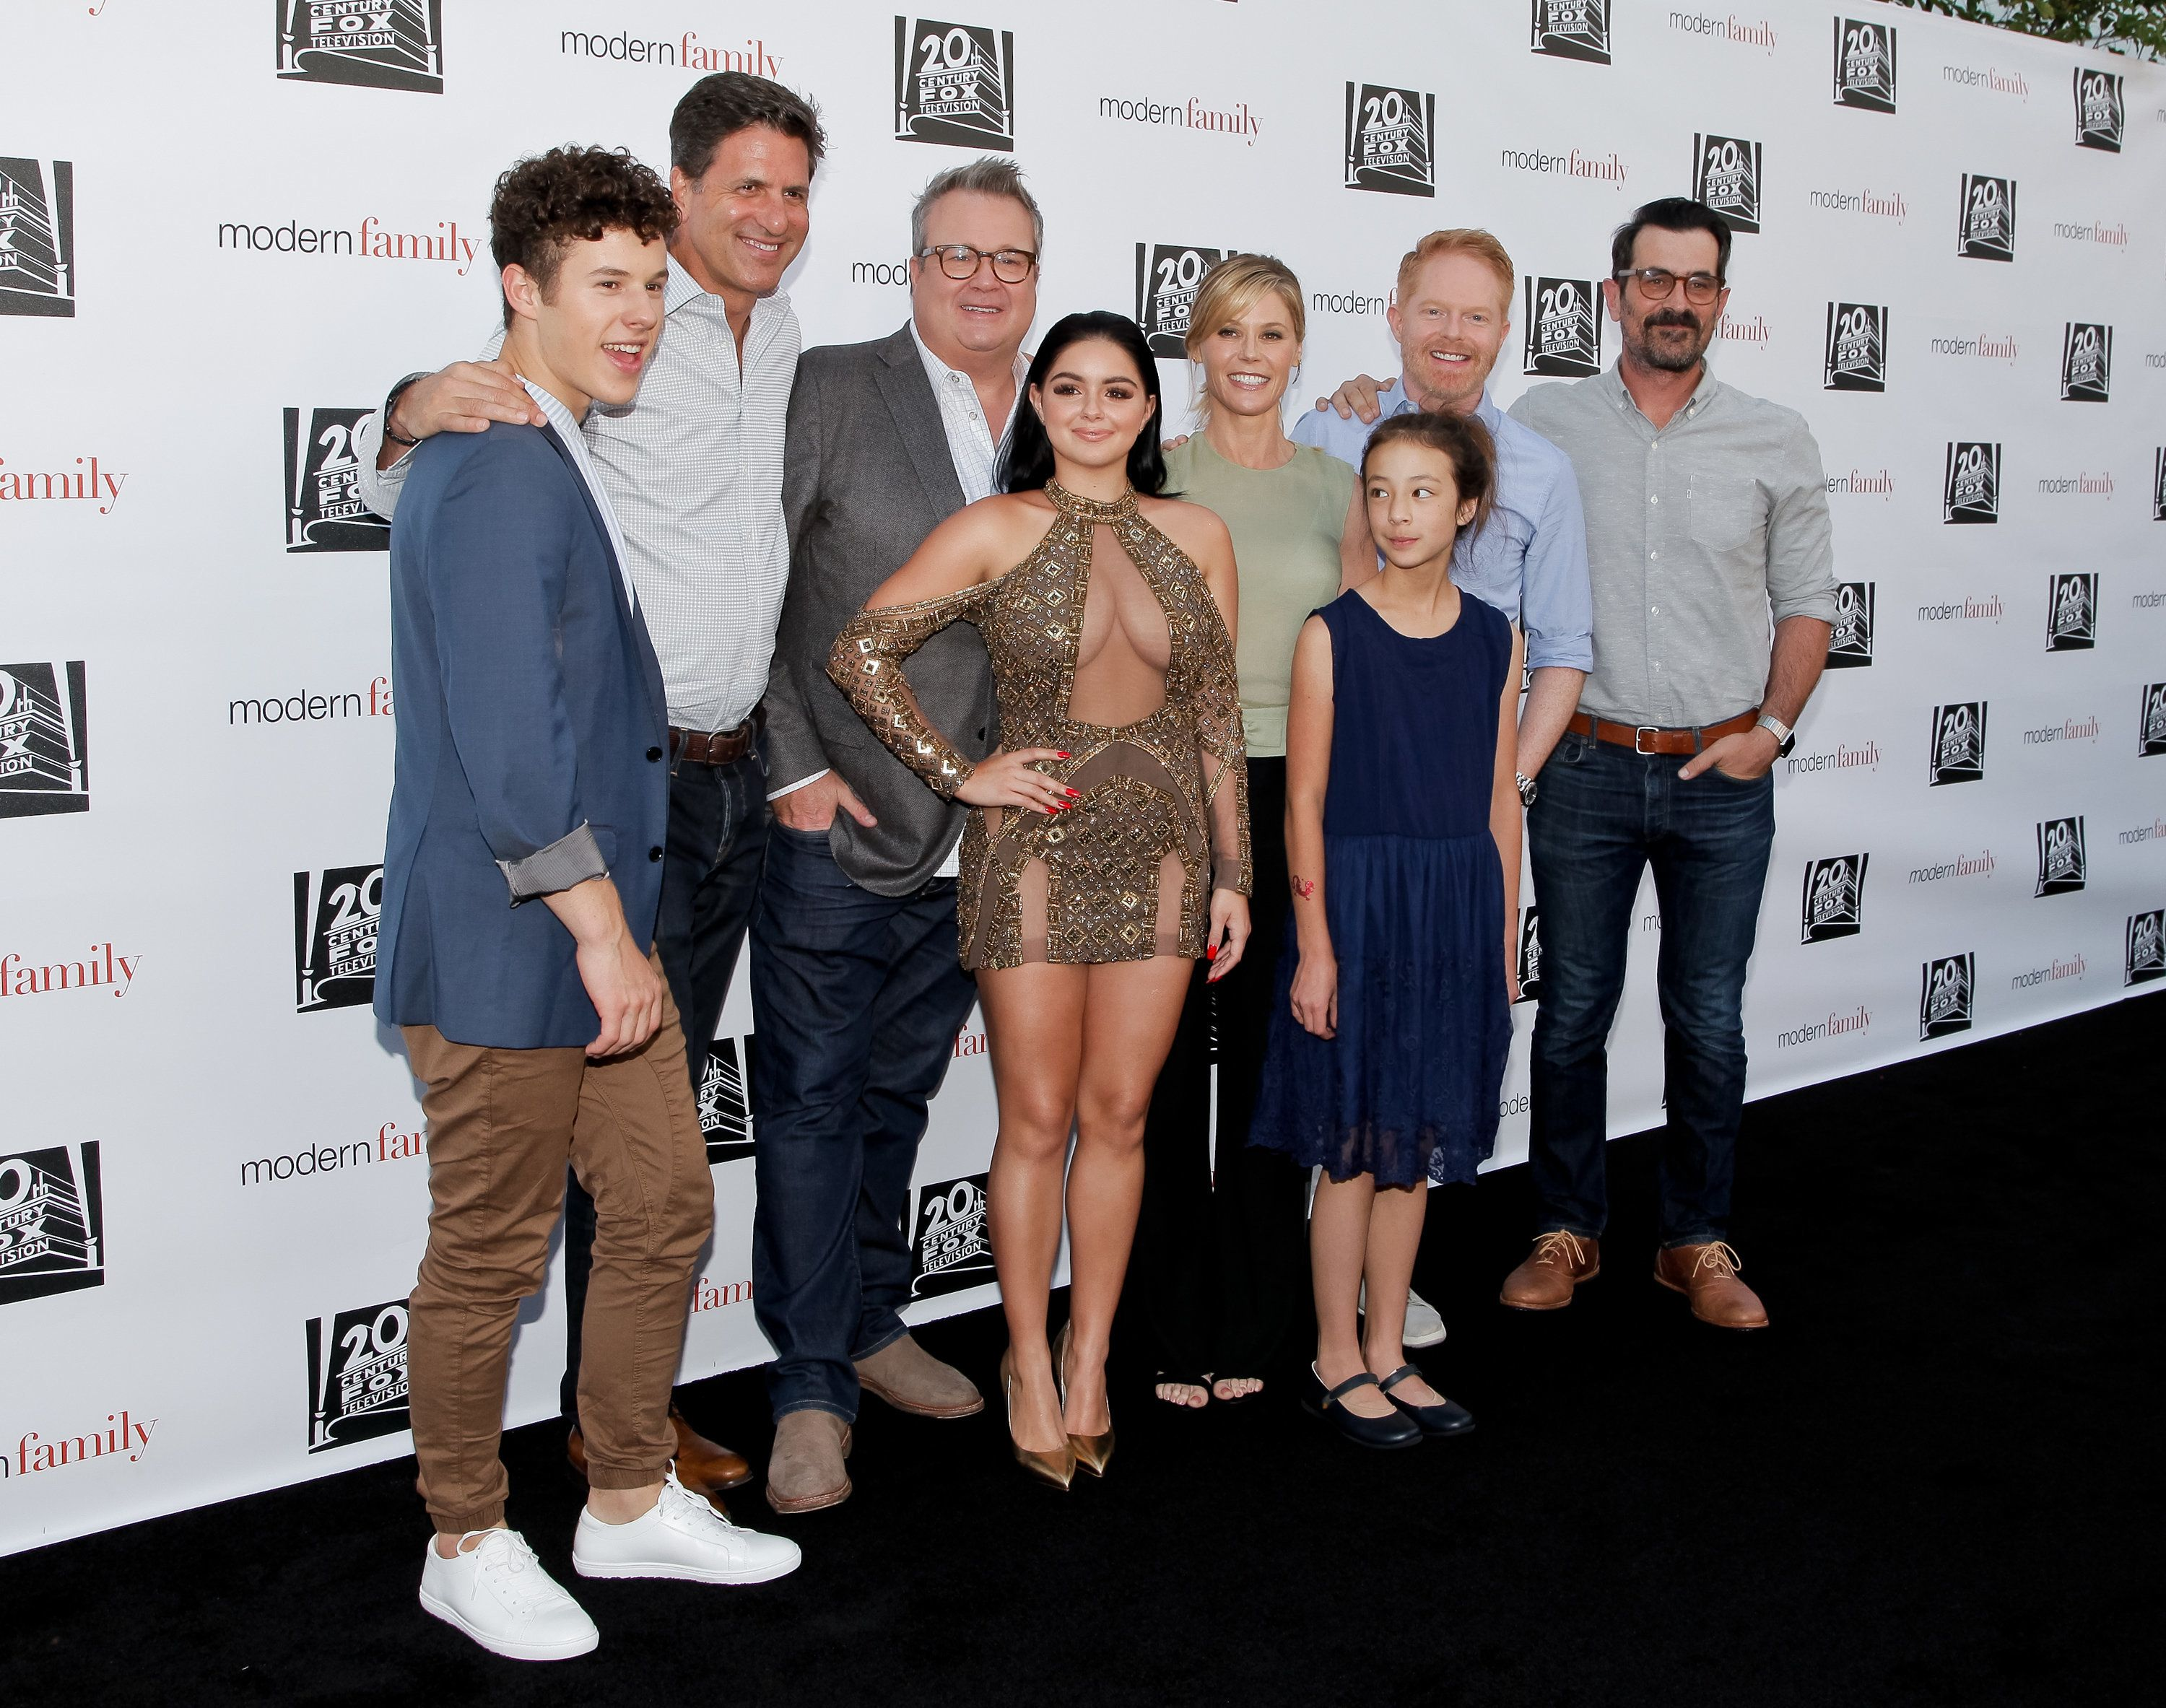 NORTH HOLLYWOOD, CA - MAY 03:  (L-R) Nolan Gould, Steven Levitan, Eric Stonestreet, Ariel Winter, Julie Bowen, Aubrey Anderson-Emmons, Jesse Tyler Ferguson and Ty Burrell attend ABC's 'Modern Family' ATAS event at Saban Media Center on May 3, 2017 in North Hollywood, California.  (Photo by Tibrina Hobson/Getty Images)